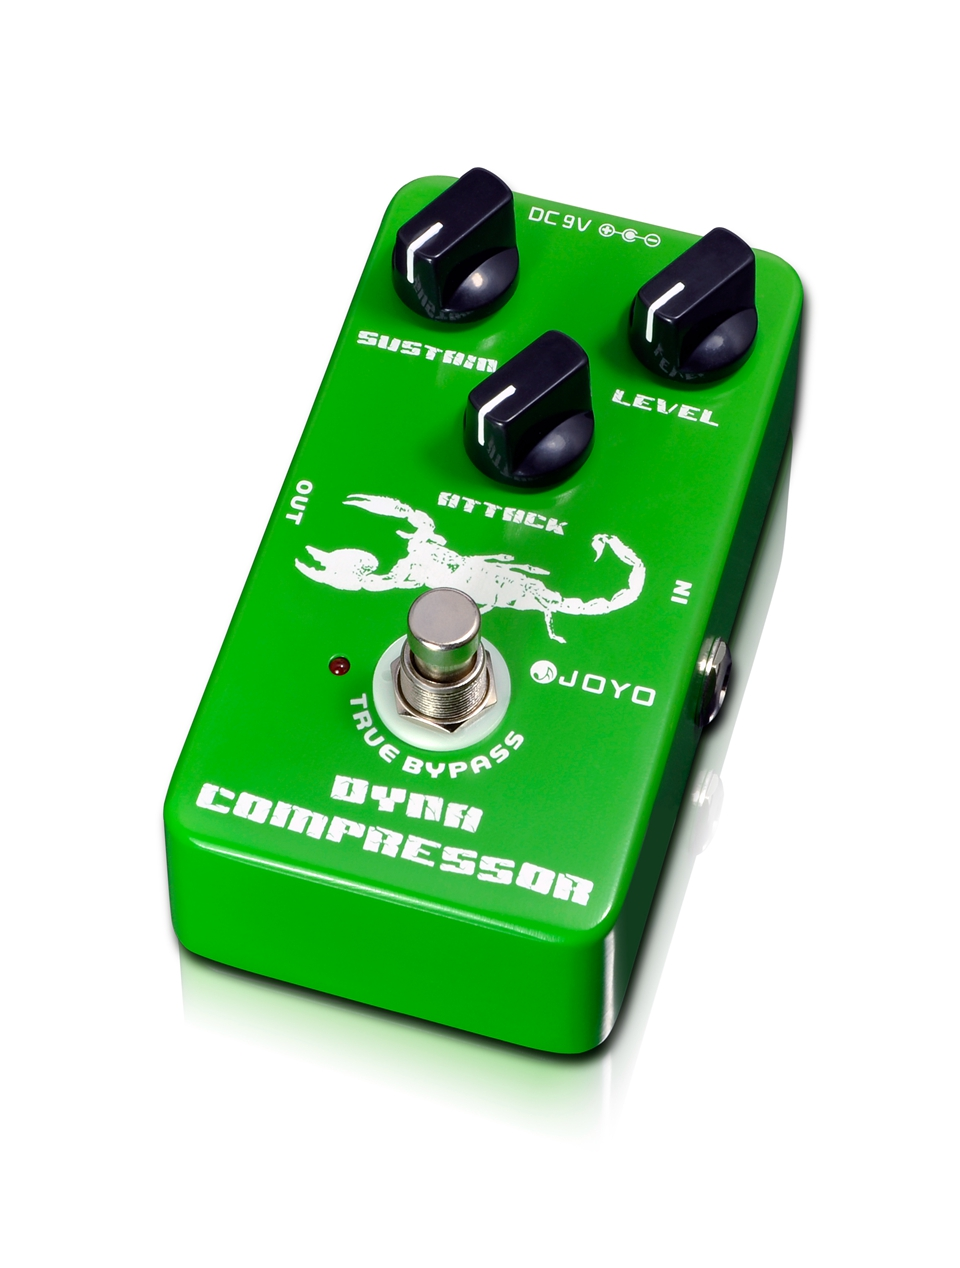 JOYO Dynamic Compressor Guitar Effect Pedal Low Noice Specifically For Bass And High Output Active Pickup